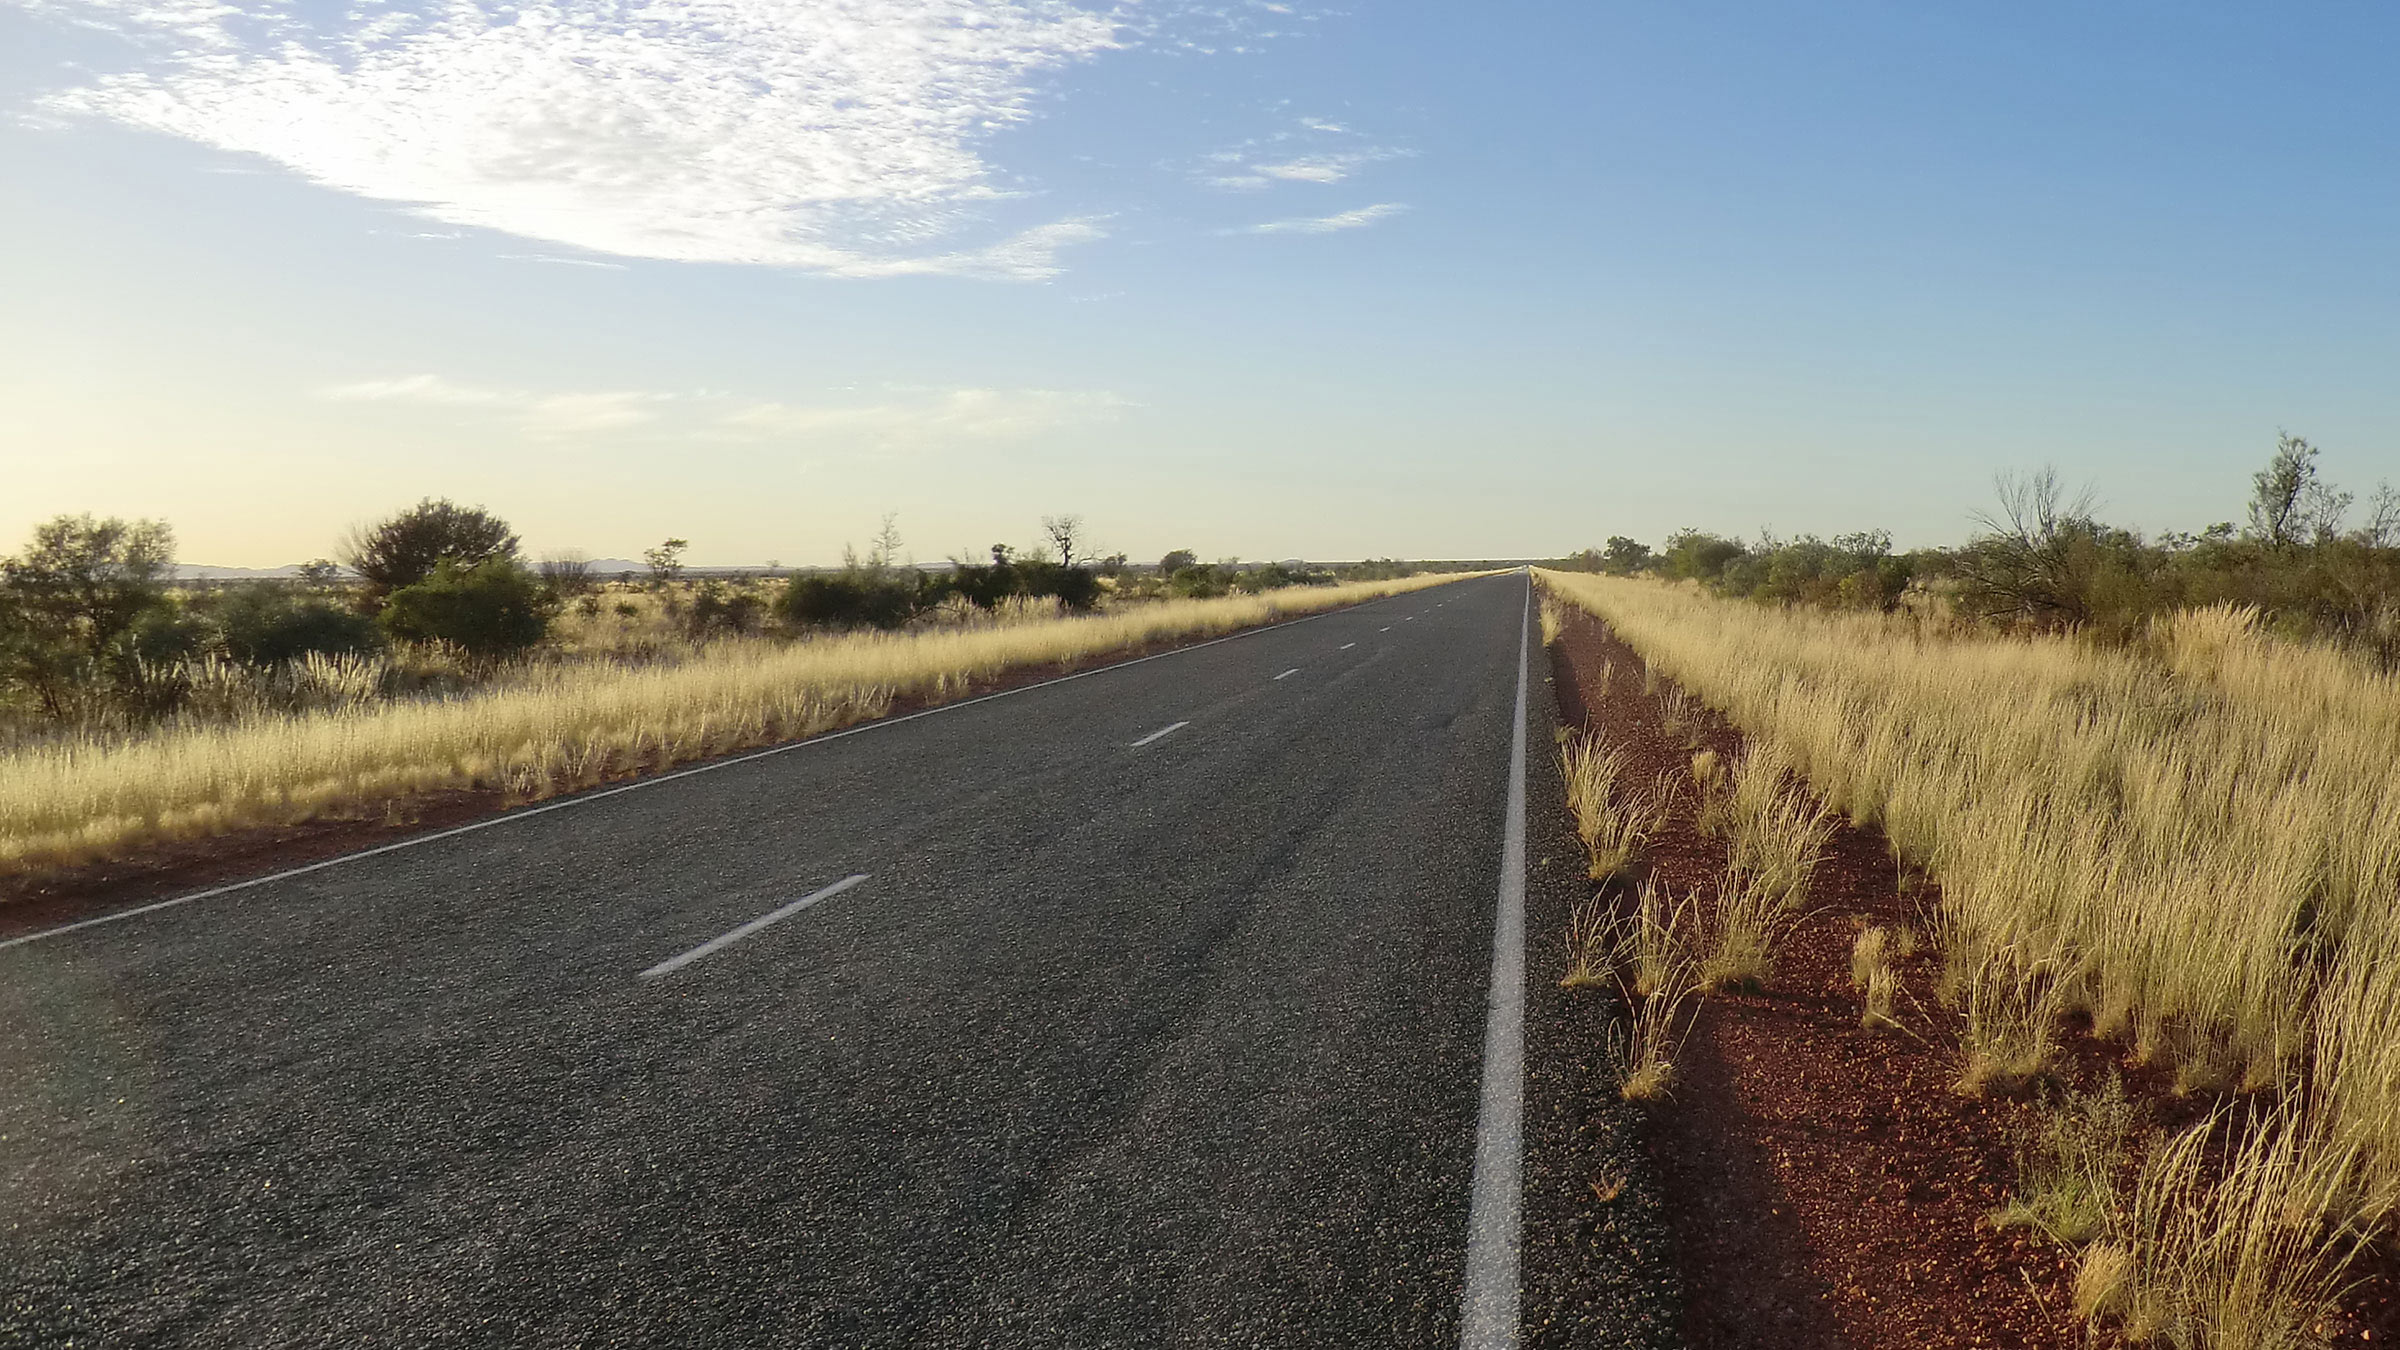 An empty road leading through the australian outback.